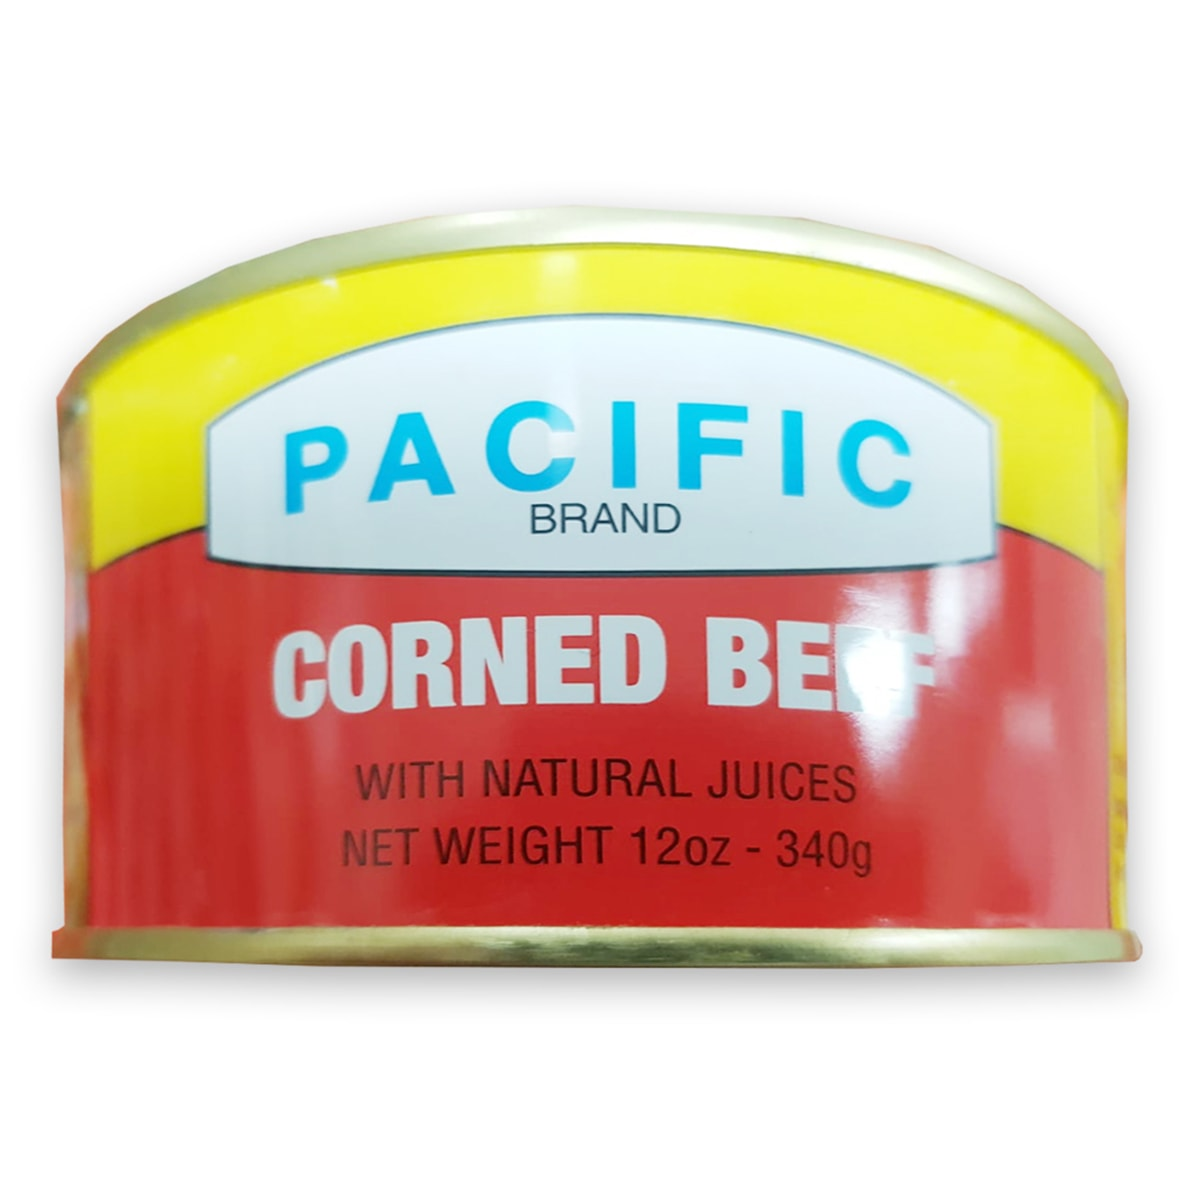 Buy Pacific Corned Beef with Natural Juices - 340 gm